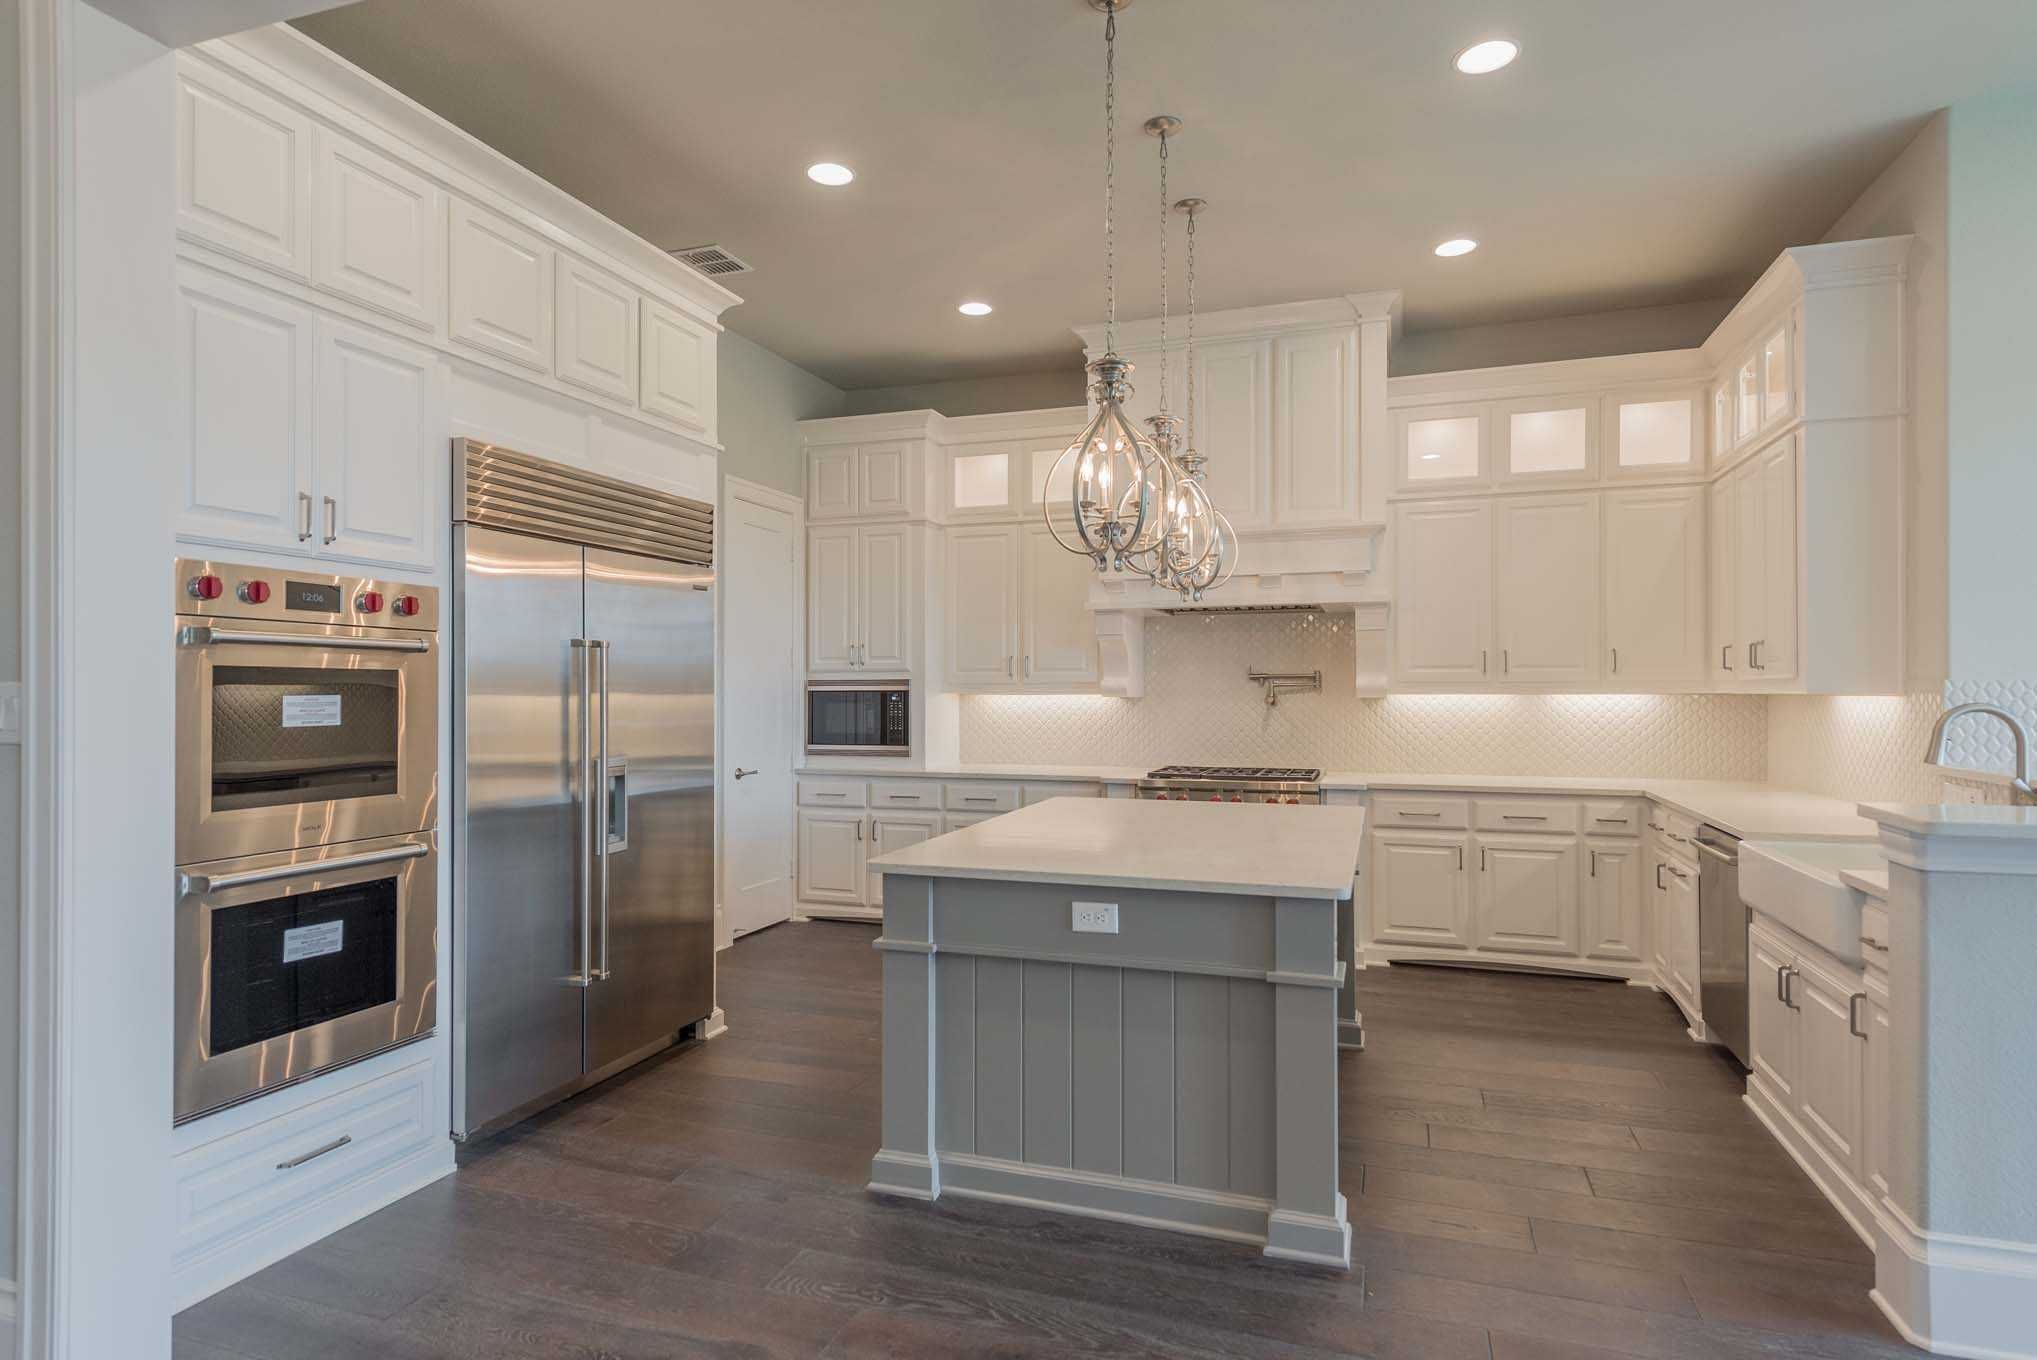 New Home For Sale 4020 Parkview Boulevard Celina Tx 75009 Home New Homes For Sale Custom Homes